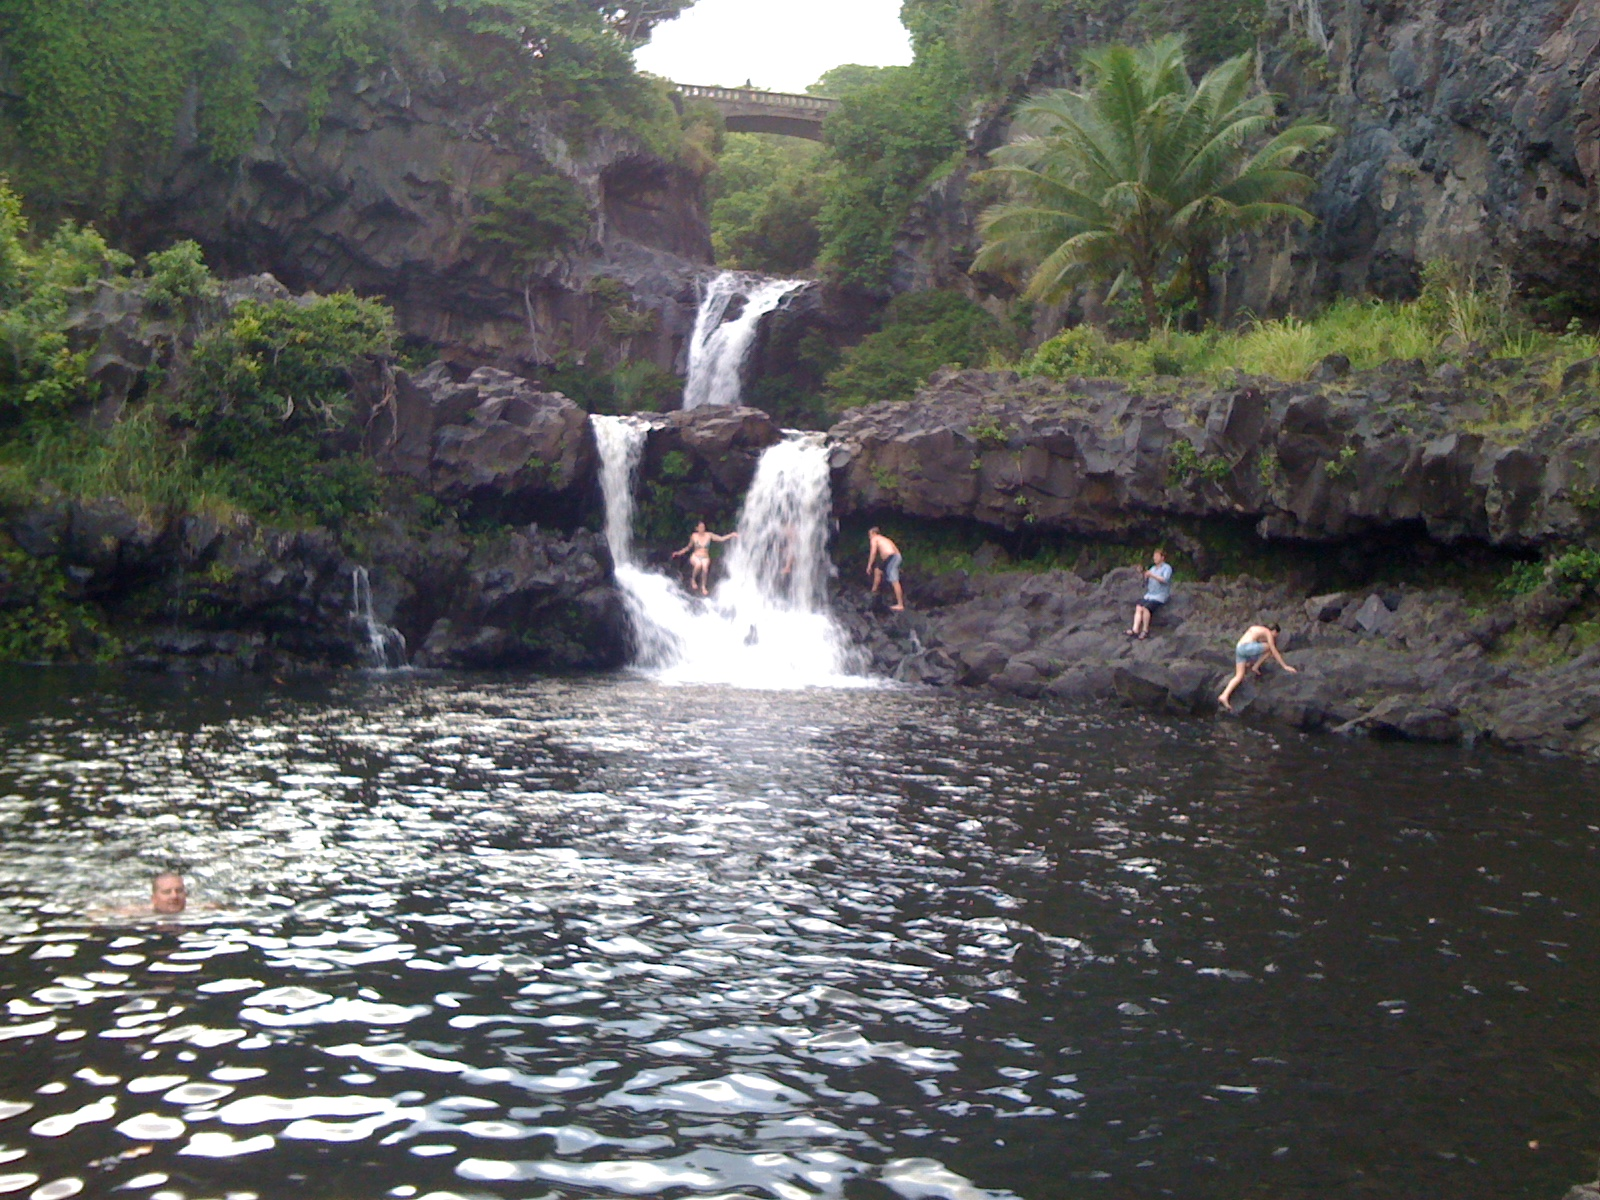 No. 1 child sits in the Oheo Pools waterfall at Haleakala National Park